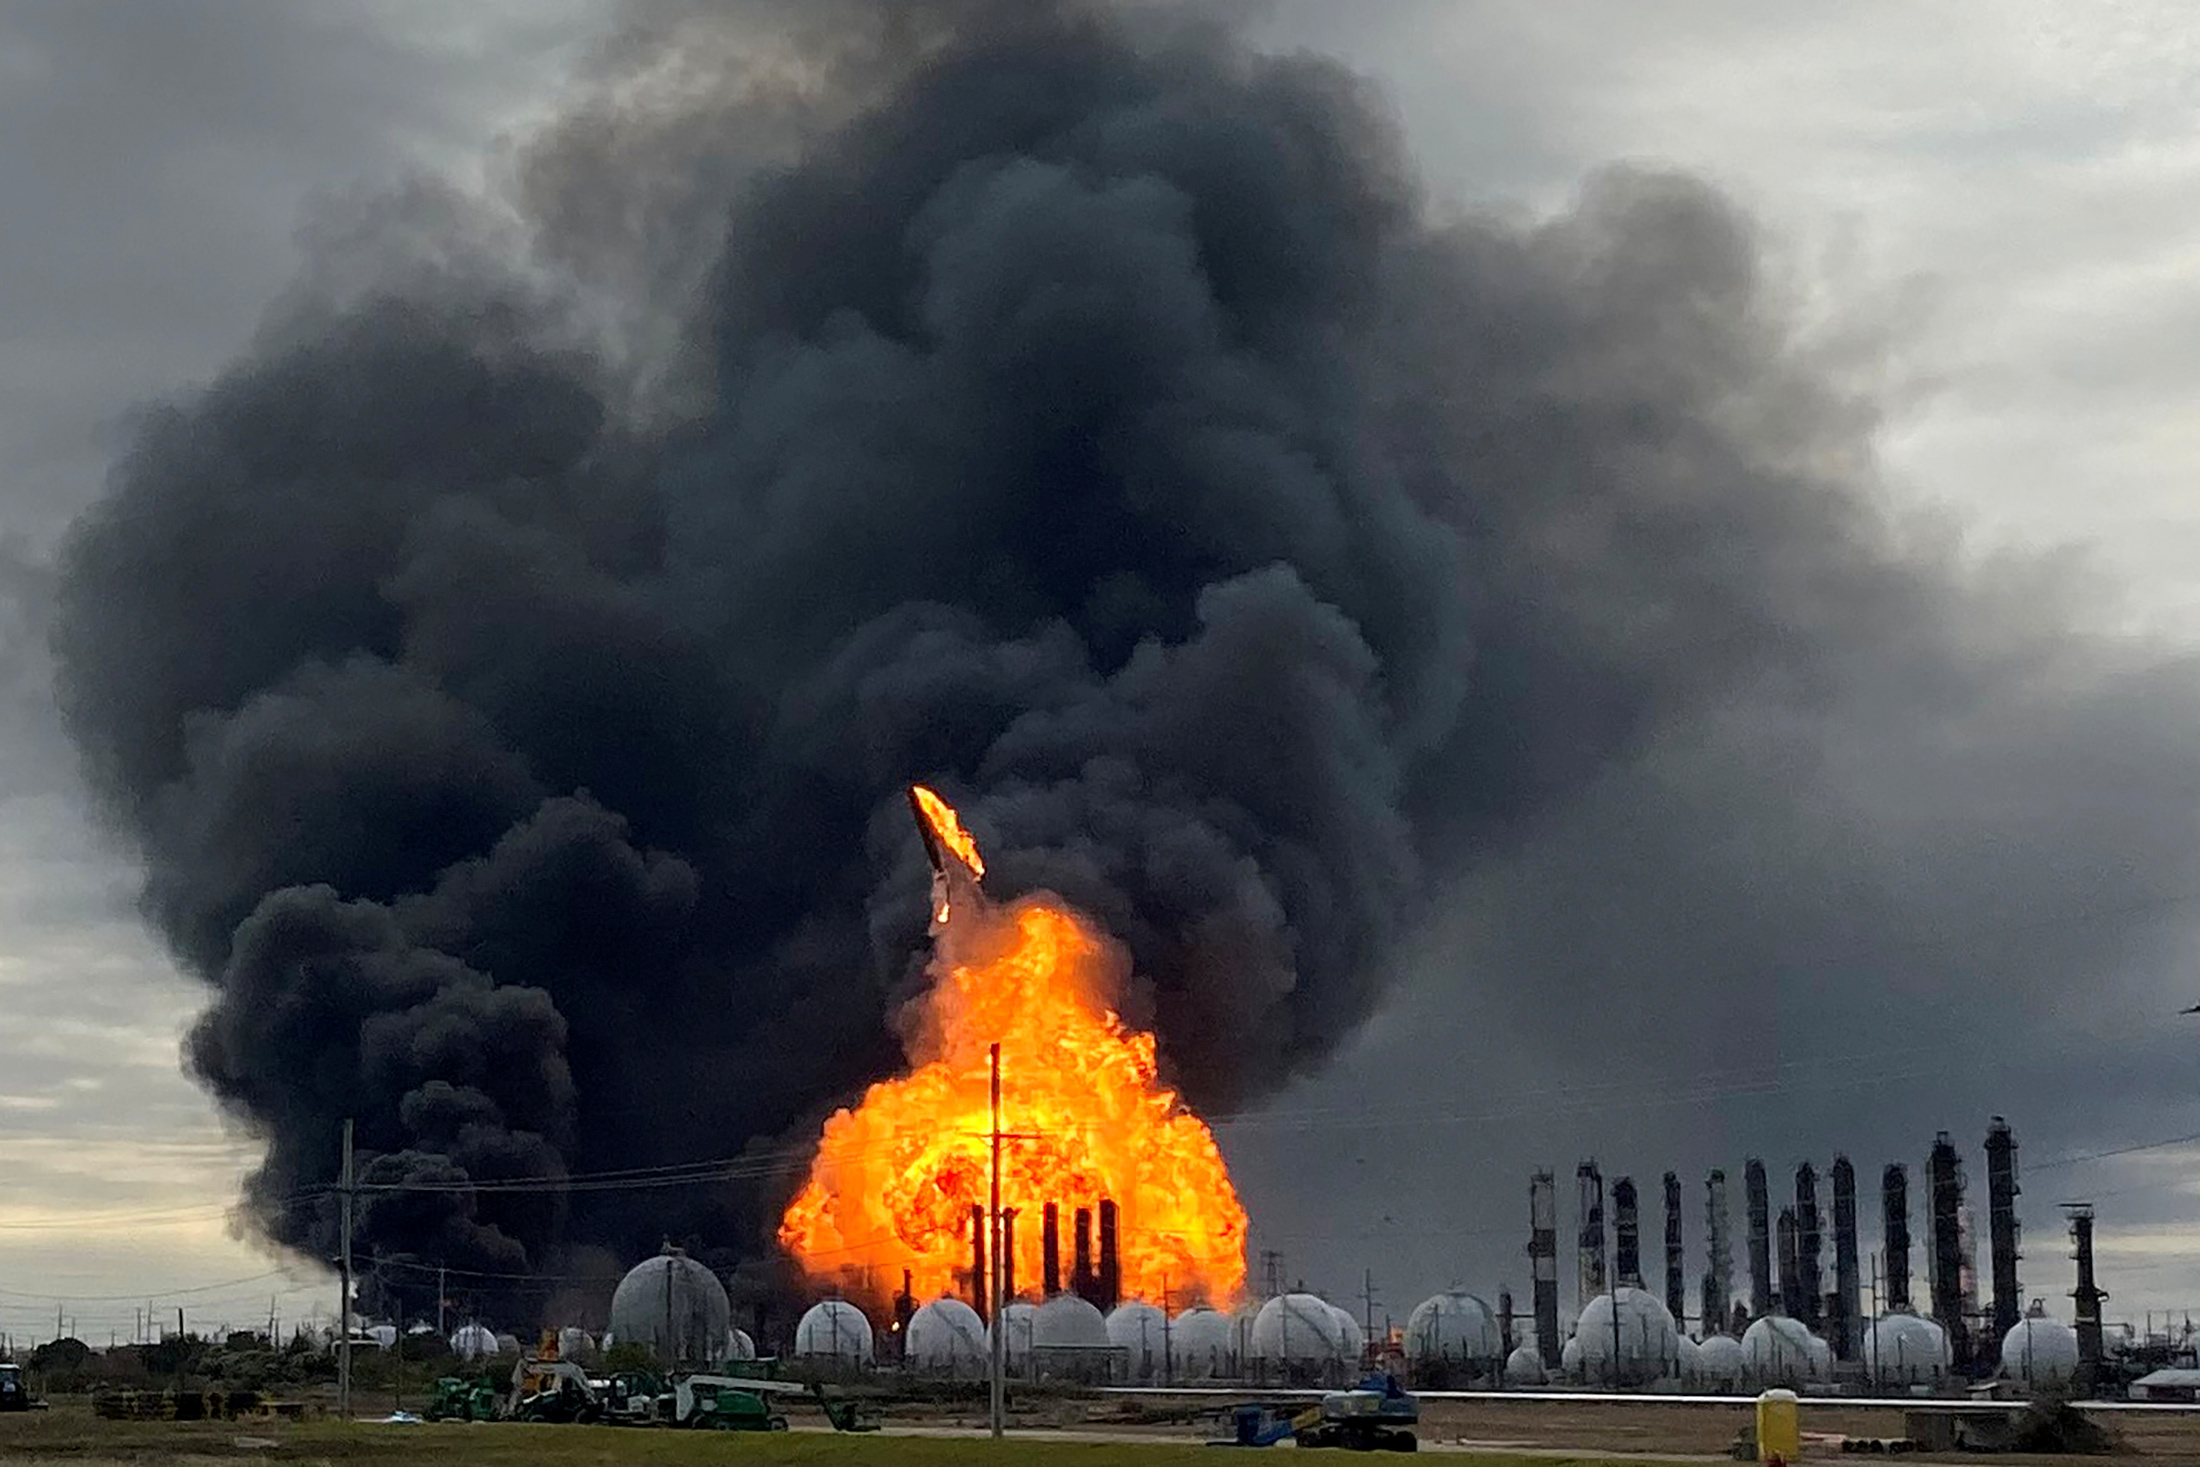 FILE PHOTO: A process tower flies through air after exploding at the TPC Group Petrochemical Plant, after an earlier massive explosion sparked a blaze at the plant in Port Neches, Texas, U.S., November 27, 2019. REUTERS/Erwin Seba/File Photo